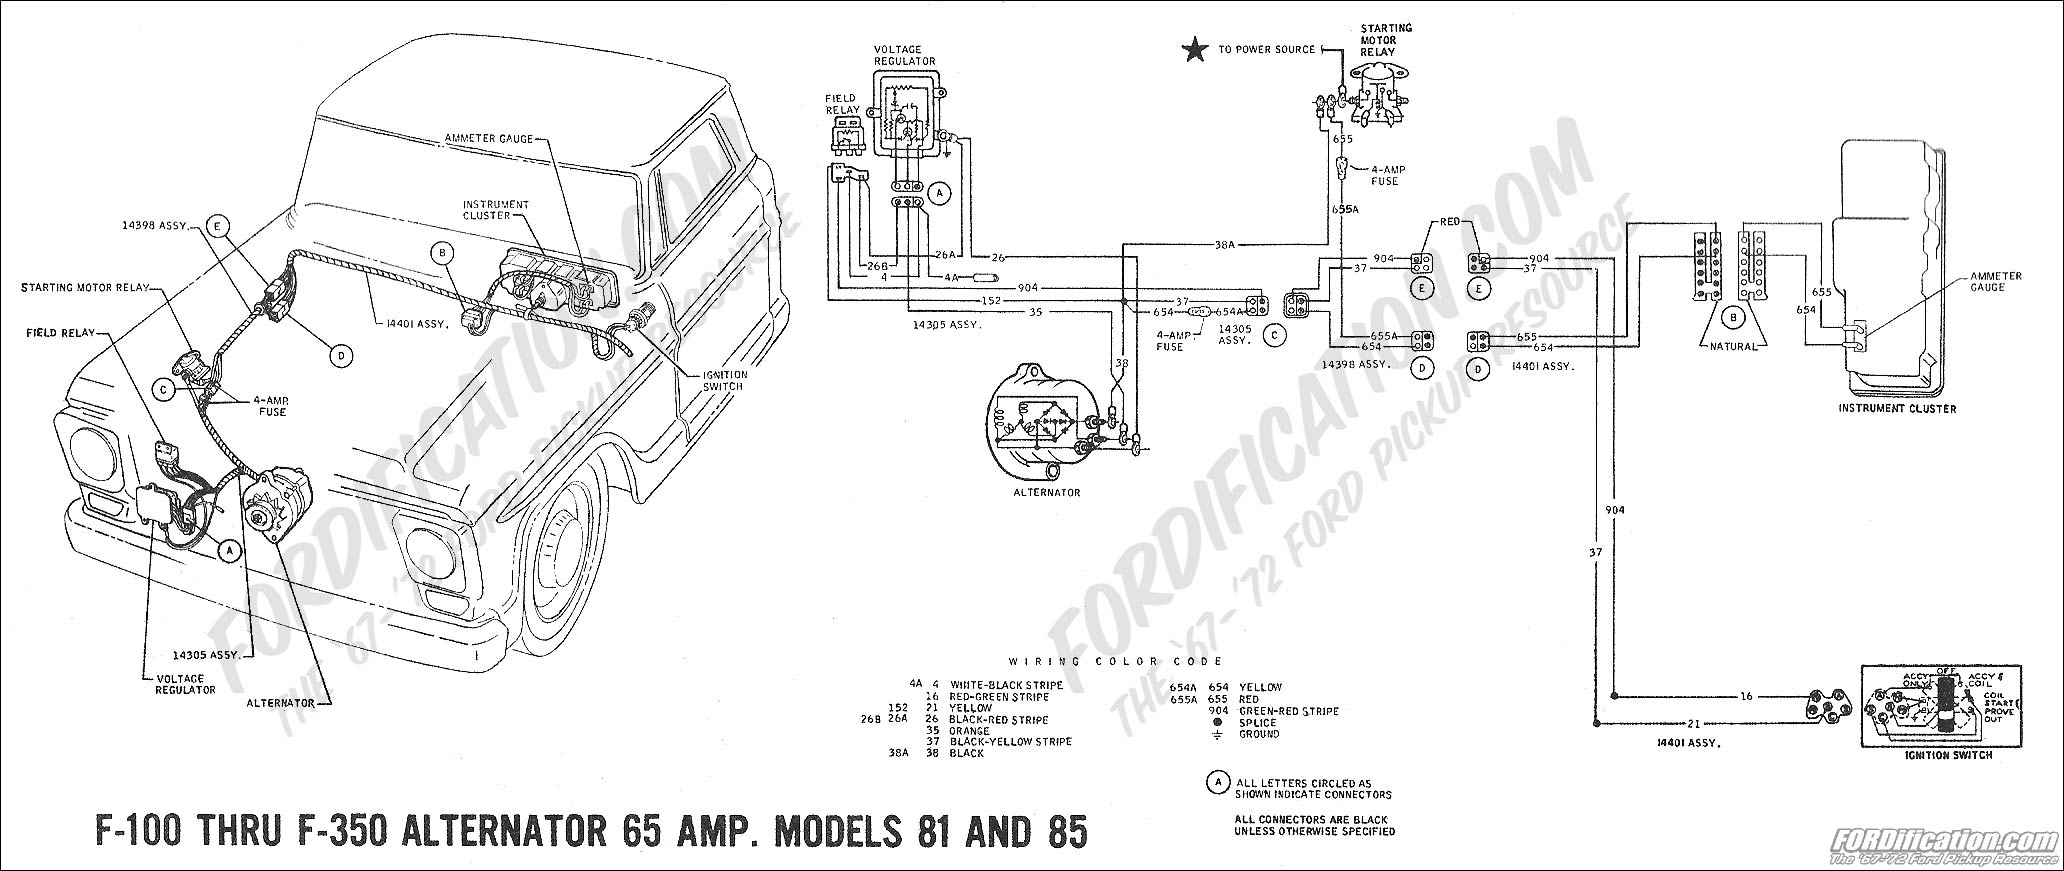 1969 F-100 thru F-350 alternator, 65-amp (Models 81 & 85)